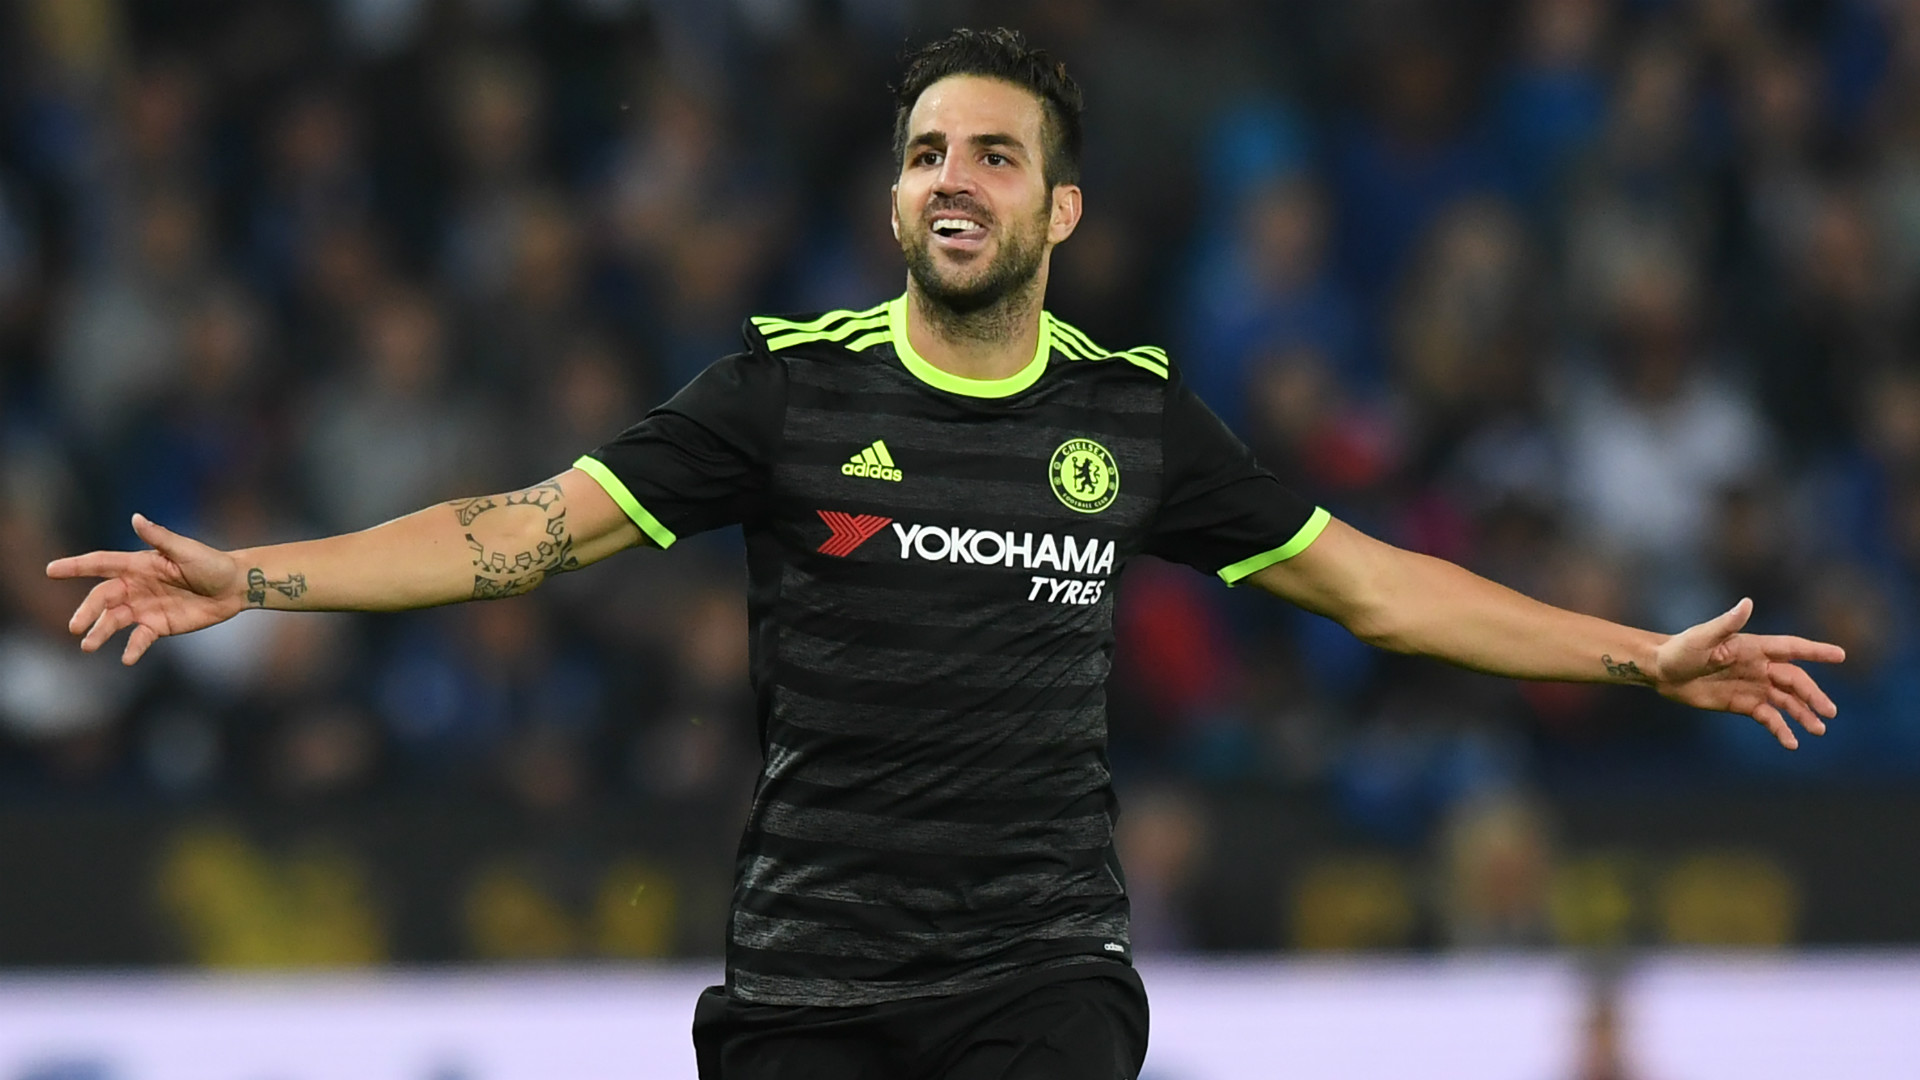 'When I don't play I'm sad' - Cesc Fabregas airs ...